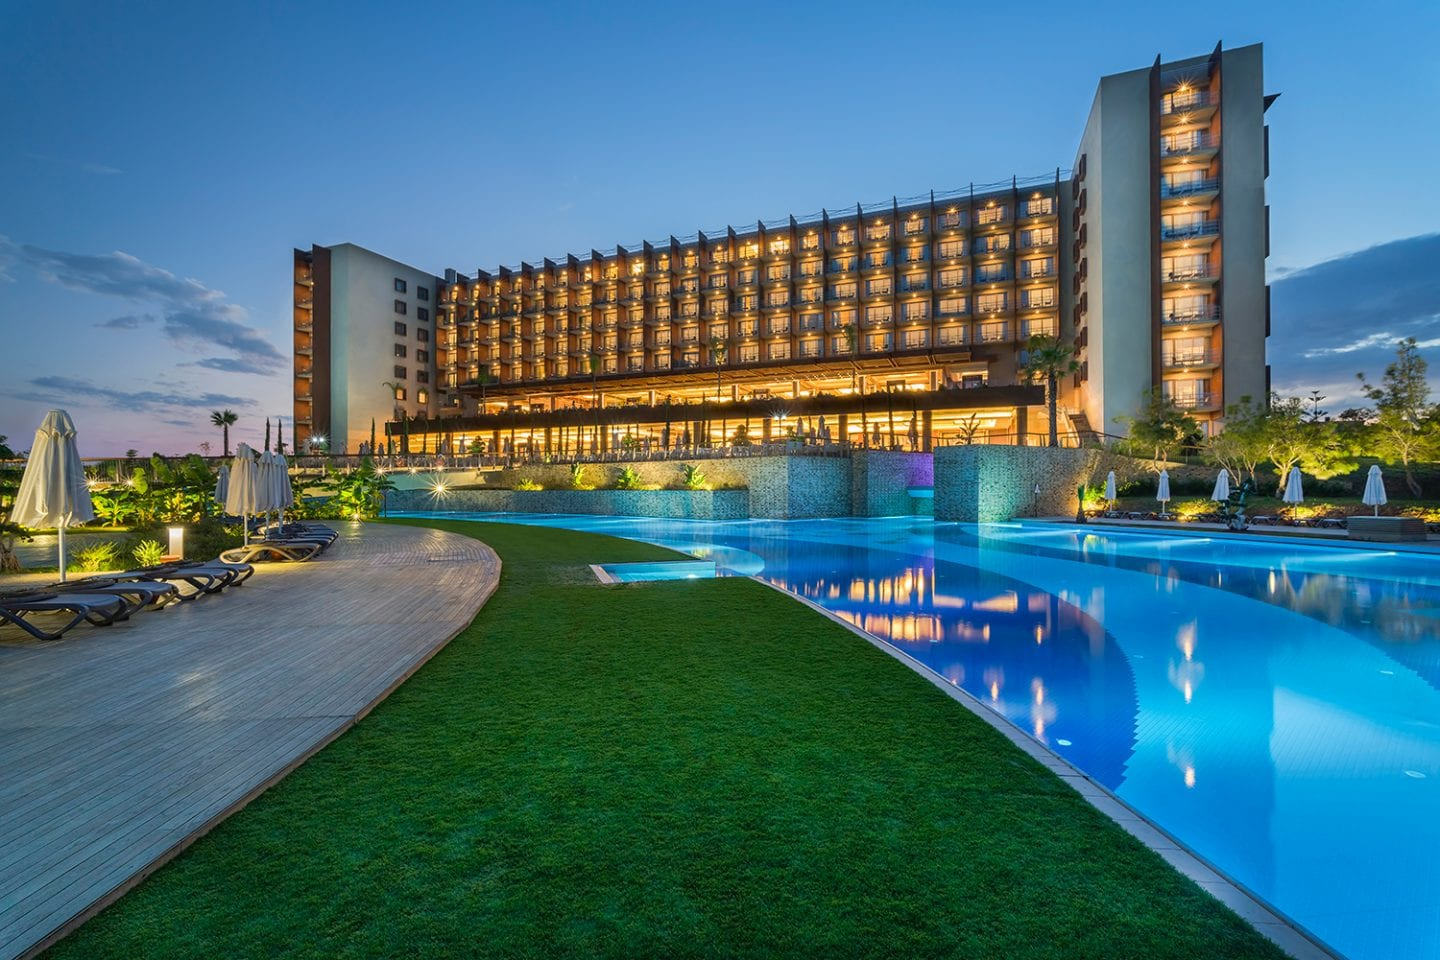 Concorde Luxury Resort Kıbrıs